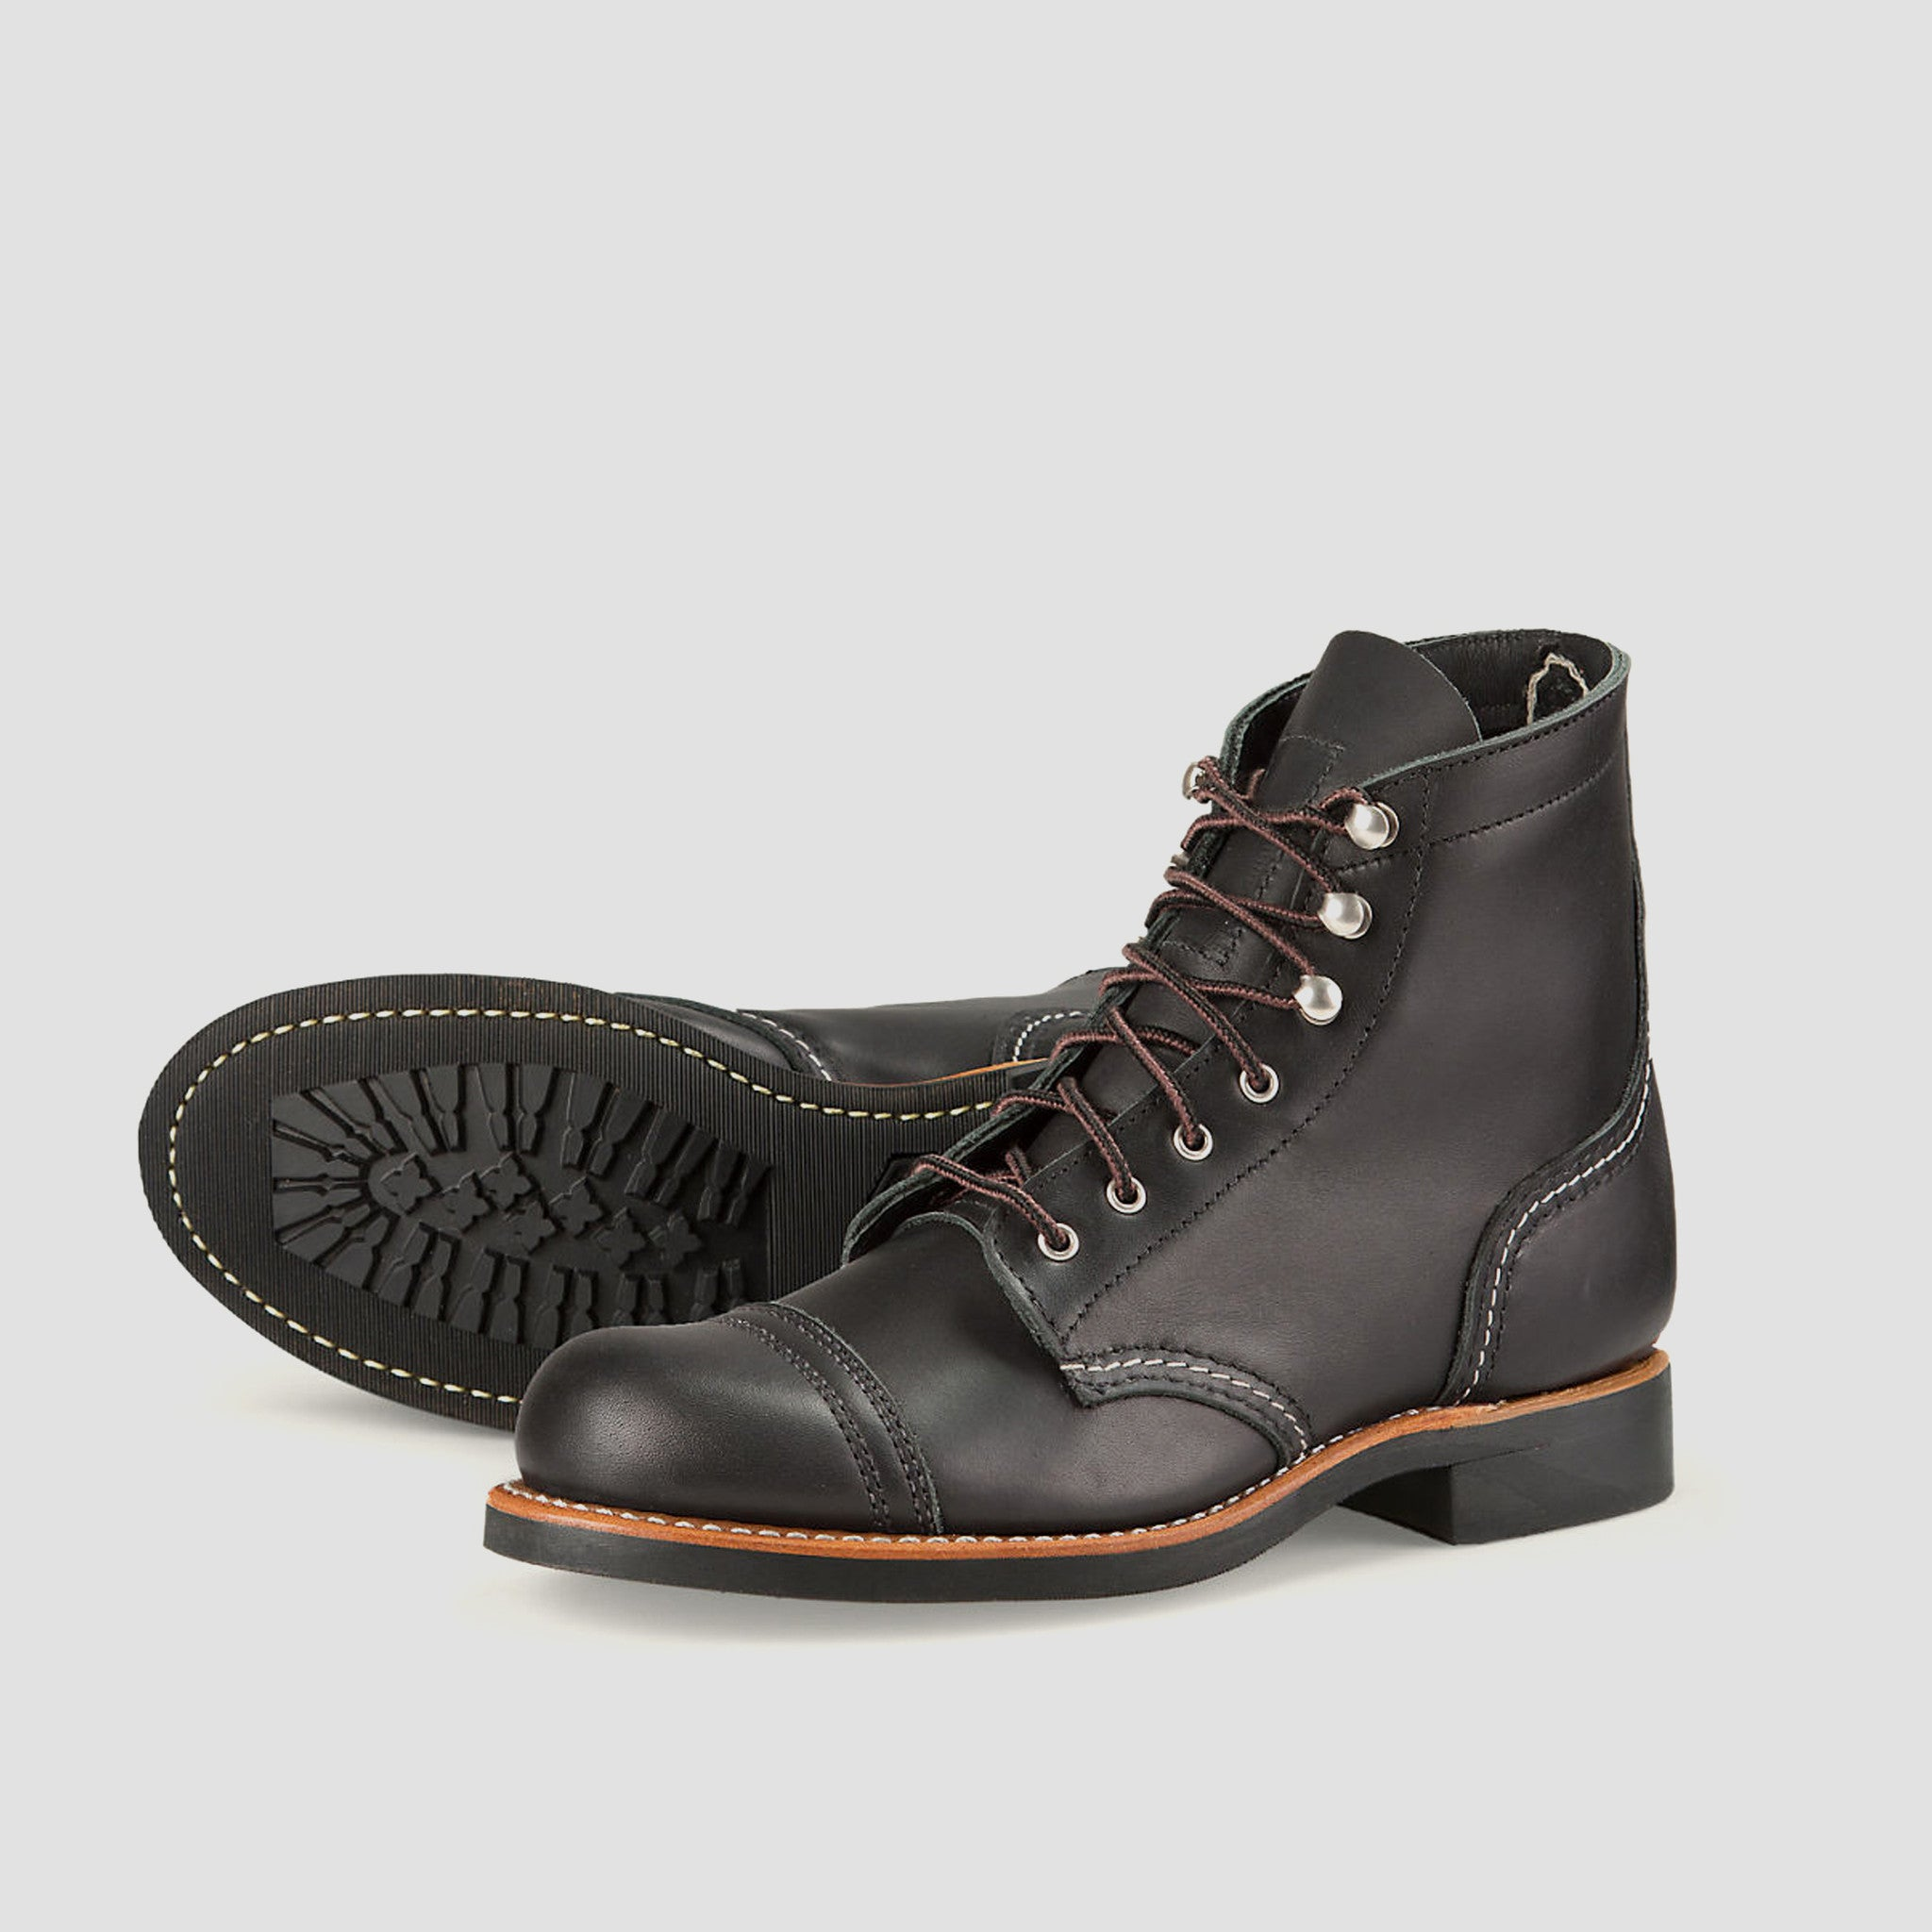 Red Wing - Women's Iron Ranger - Charcoal